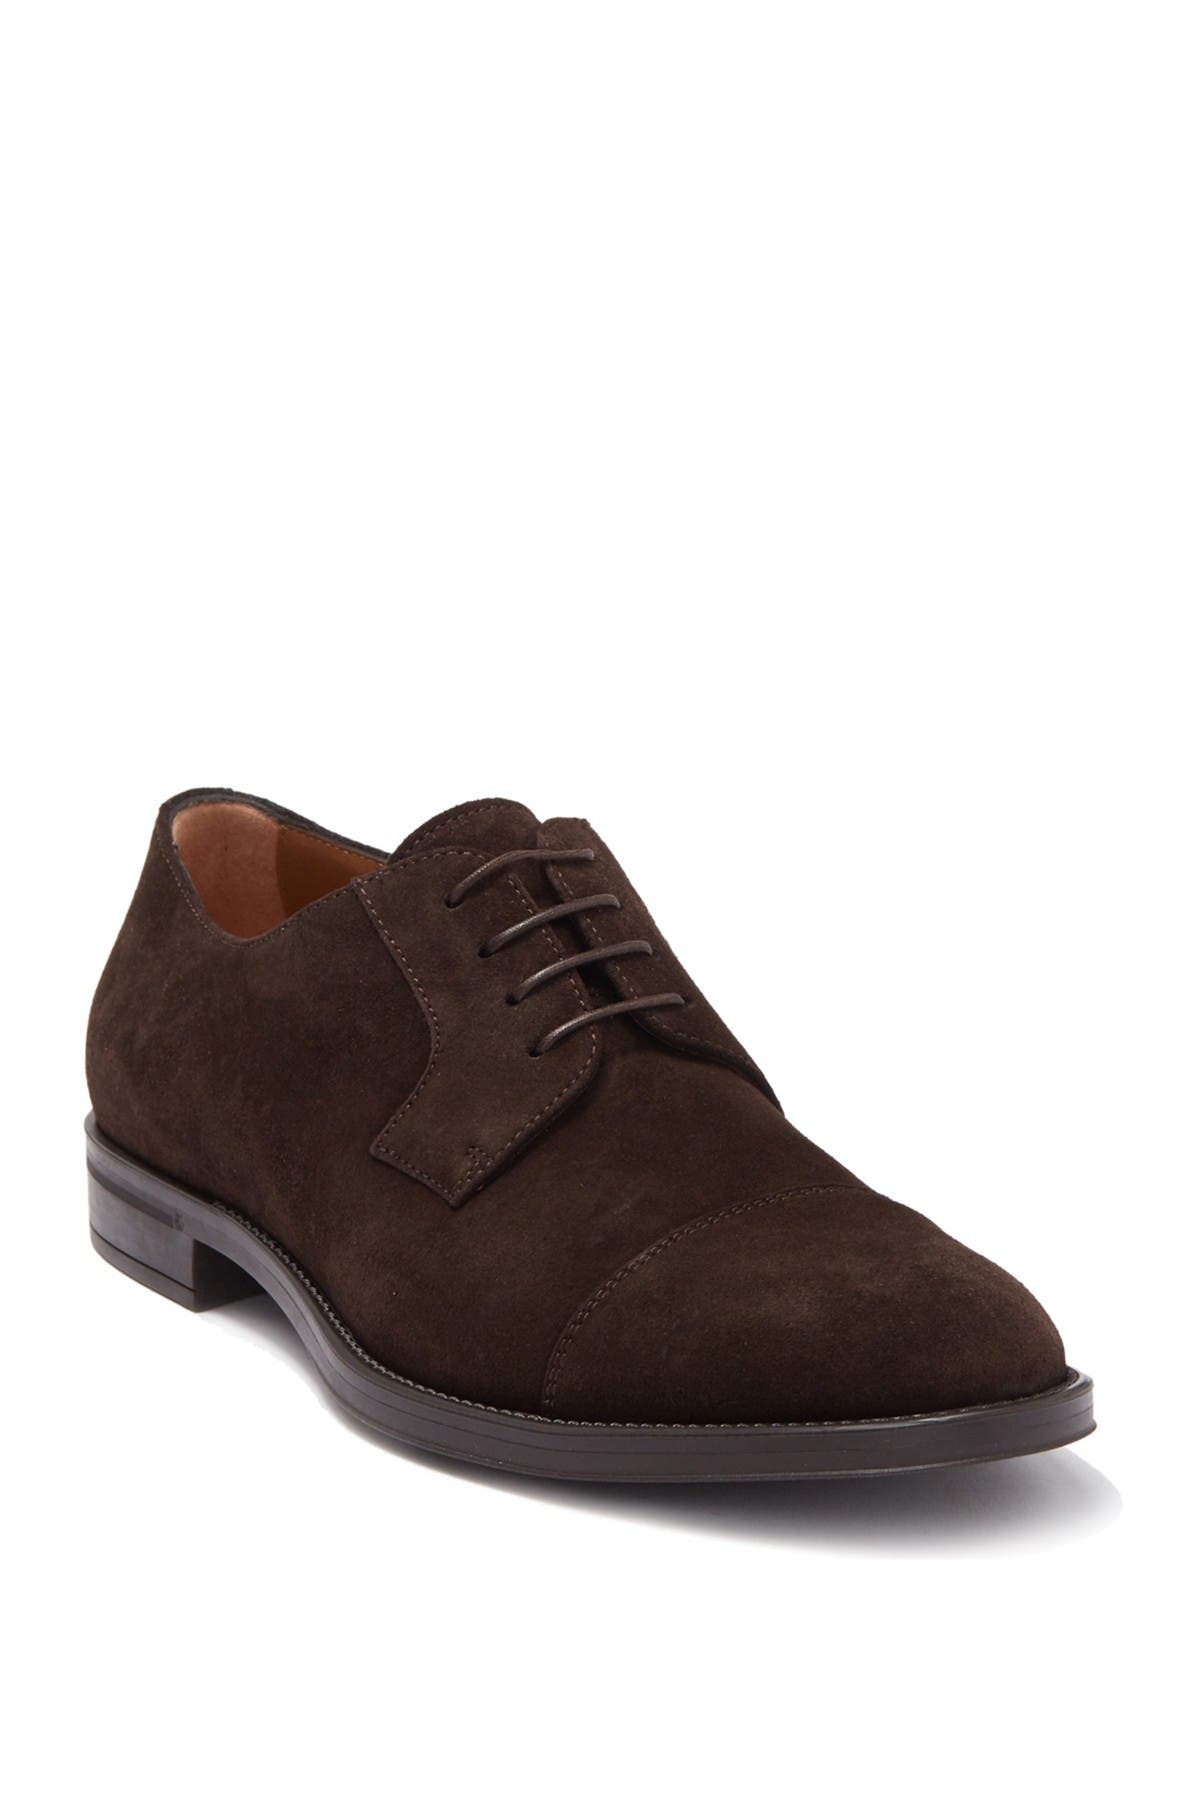 Image of BOSS Coventry Suede Derby